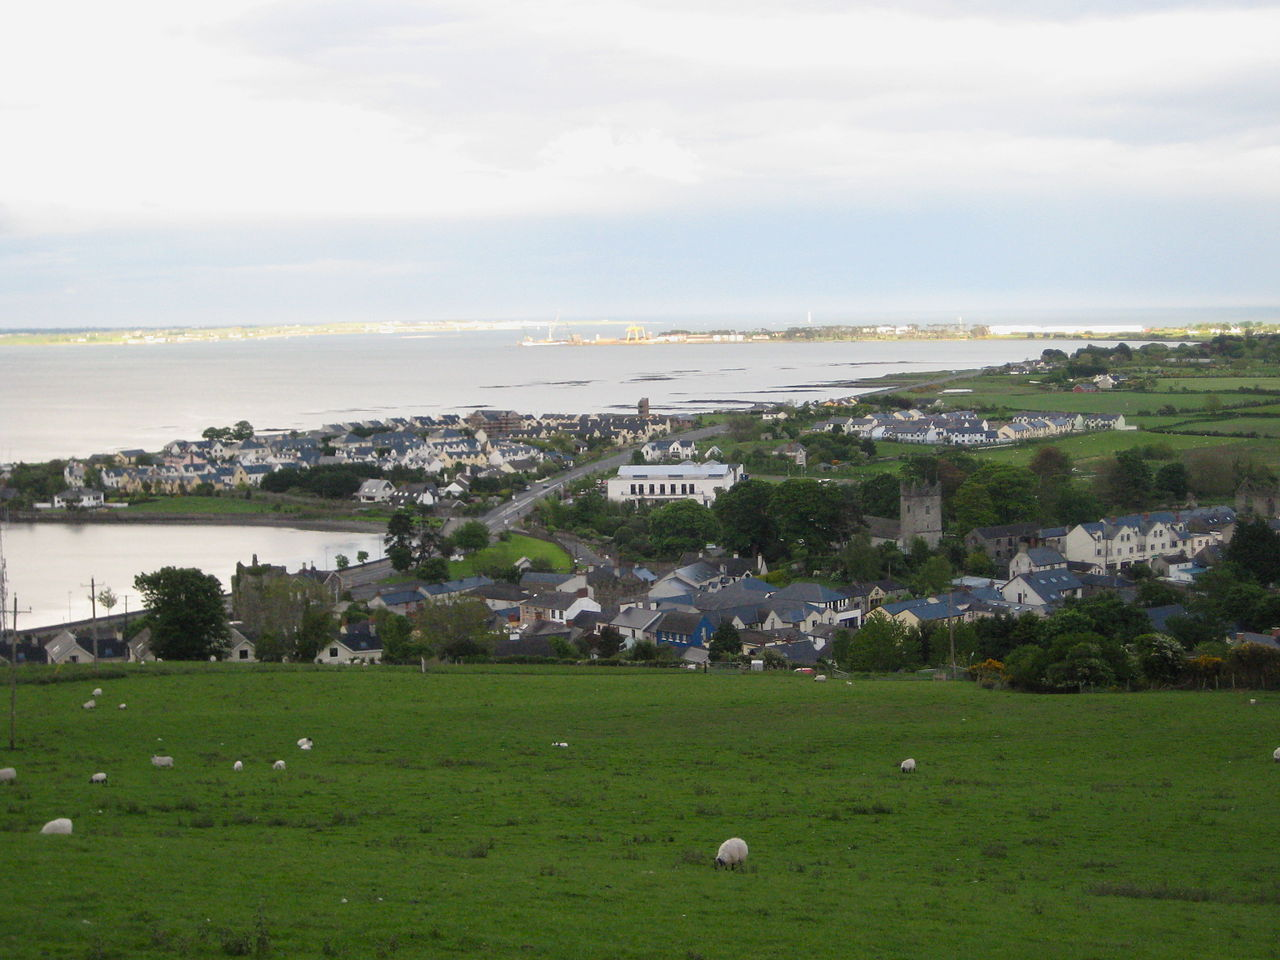 https://upload.wikimedia.org/wikipedia/commons/thumb/3/3f/Carlingford_Town.JPG/1280px-Carlingford_Town.JPG